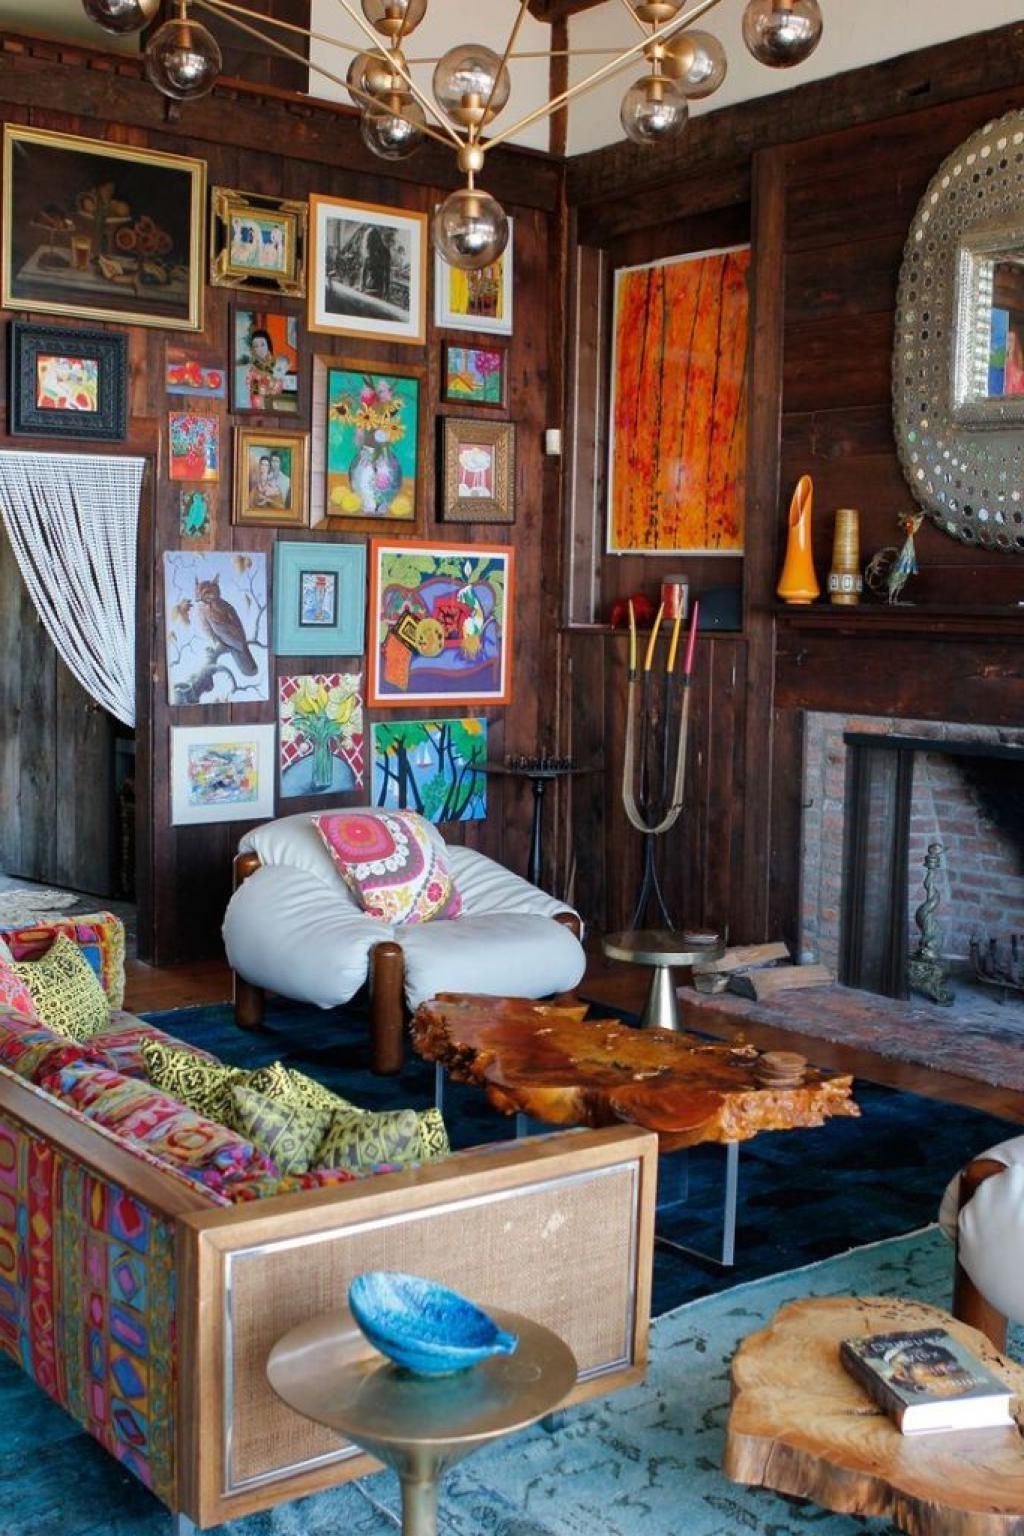 Rustic Eclectic Room So Colorful And Cute With Frame ...